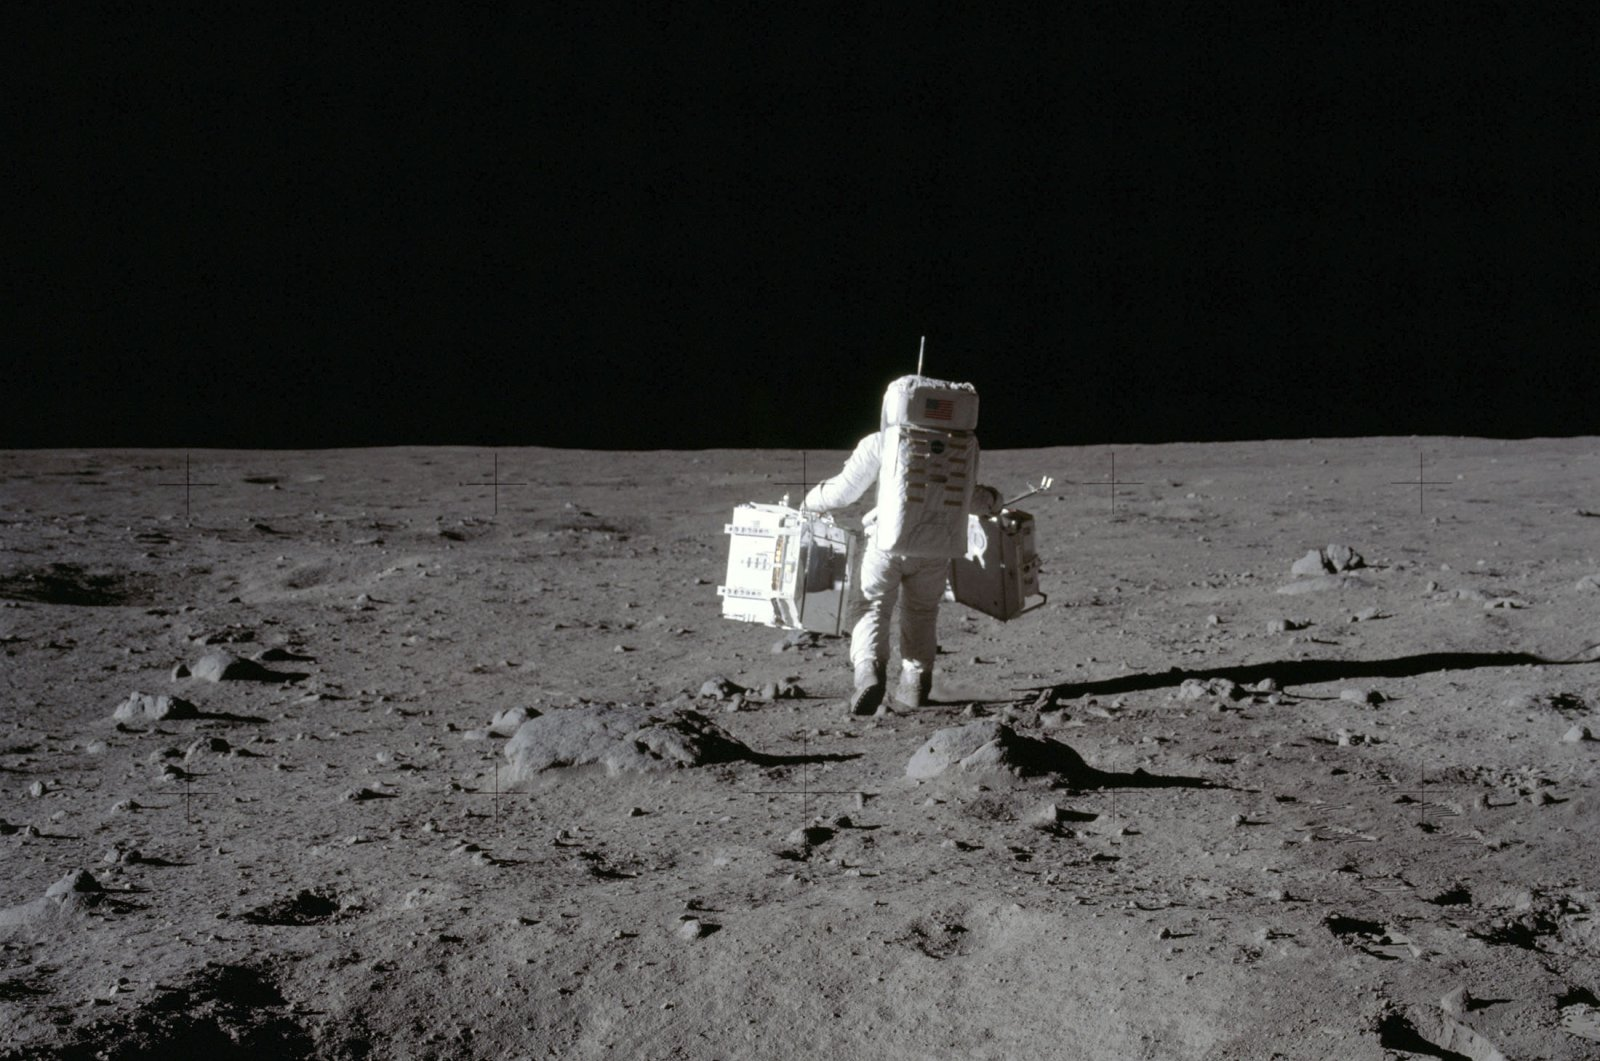 In this July 20, 1969 photo, American astronaut Buzz Aldrin walks on the surface of the Moon in the Tranquility Base area. (Neil Armstrong / NASA via AP)